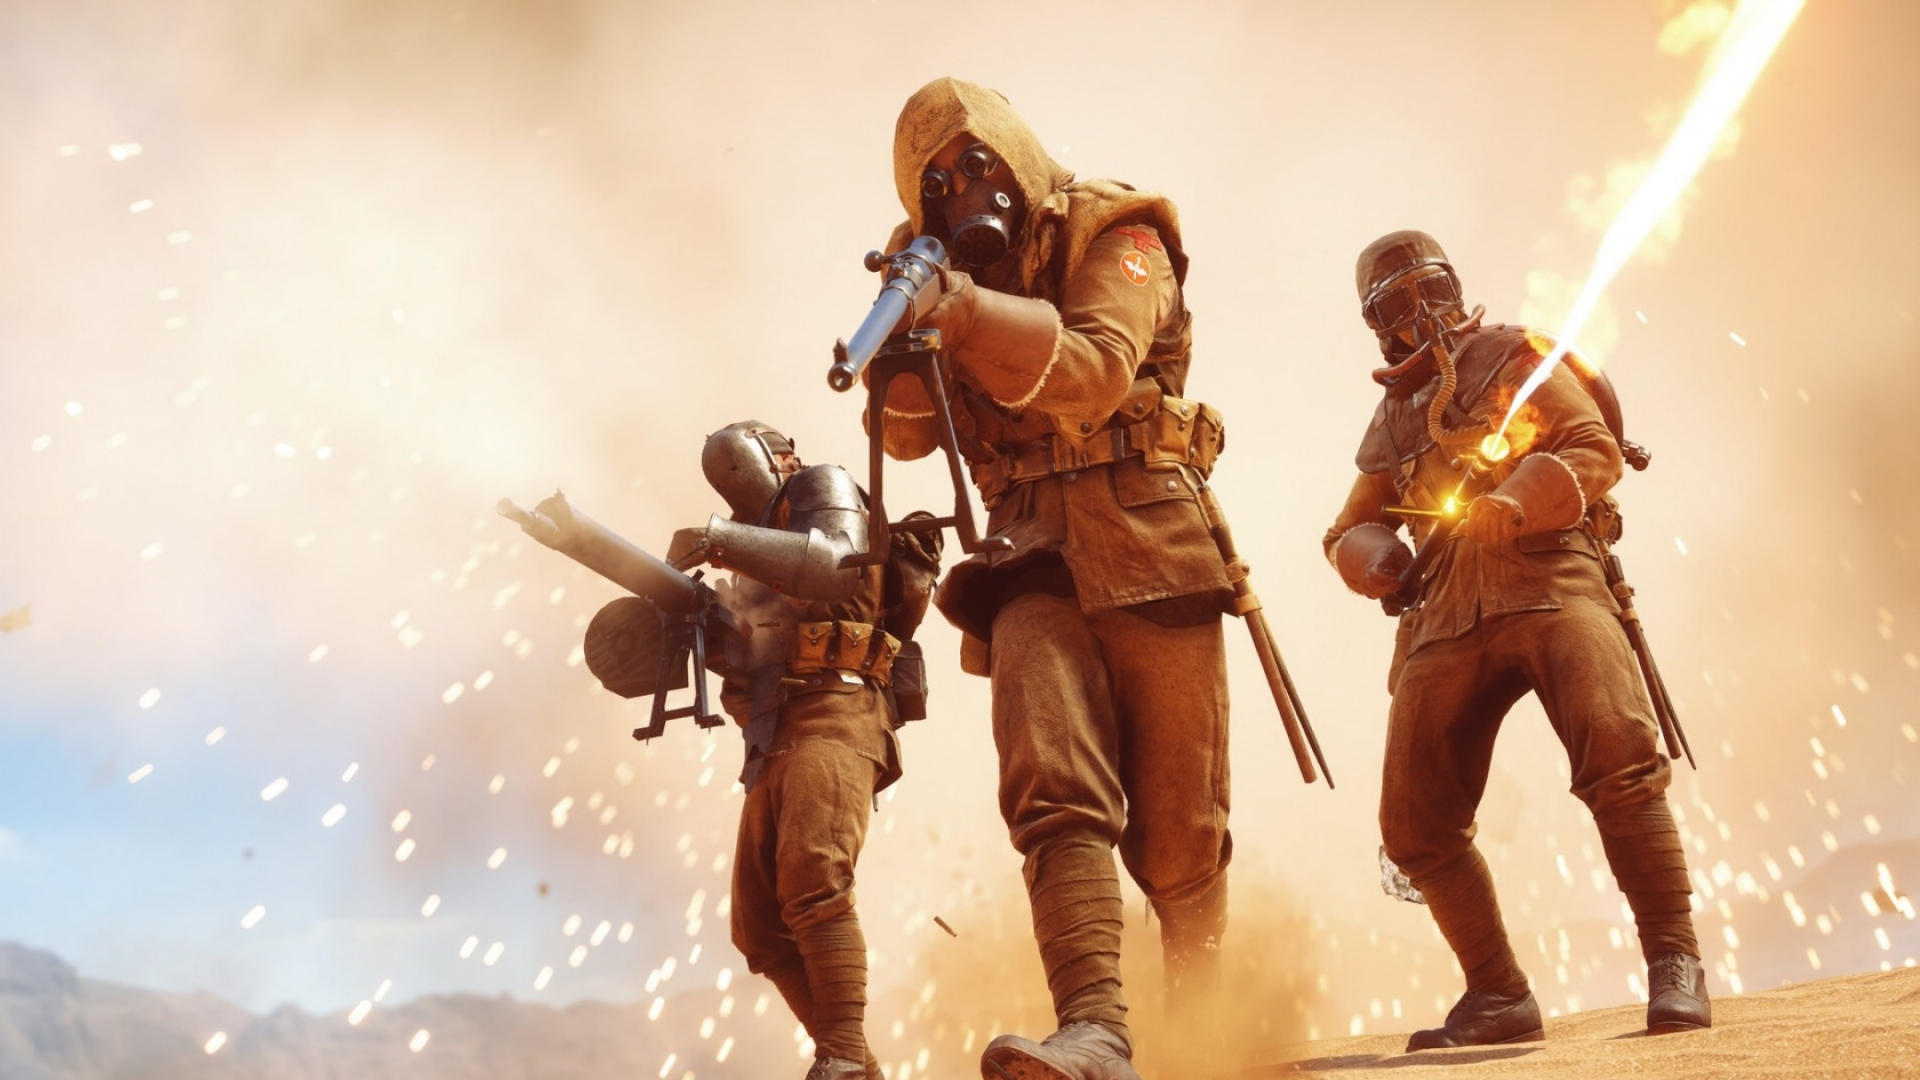 Battlefield 1 And Titanfall 2 Release On EA Access This